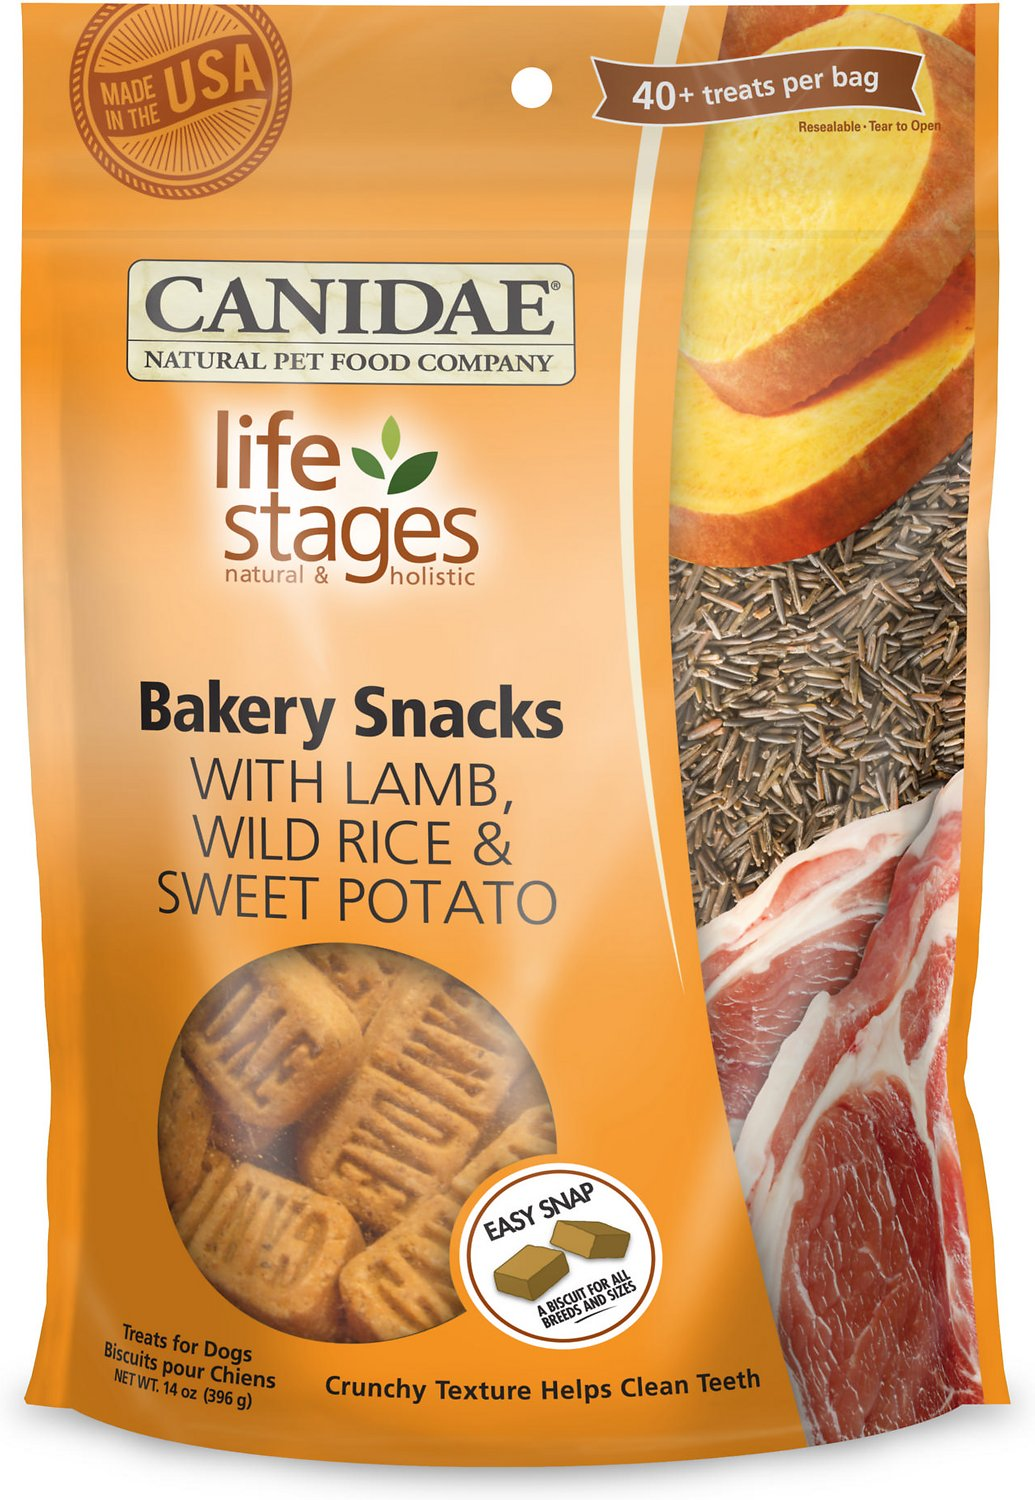 CANIDAE Life Stages Bakery Snacks with Lamb, Wild Rice & Sweet Potato Dog Treats, 14-oz bag